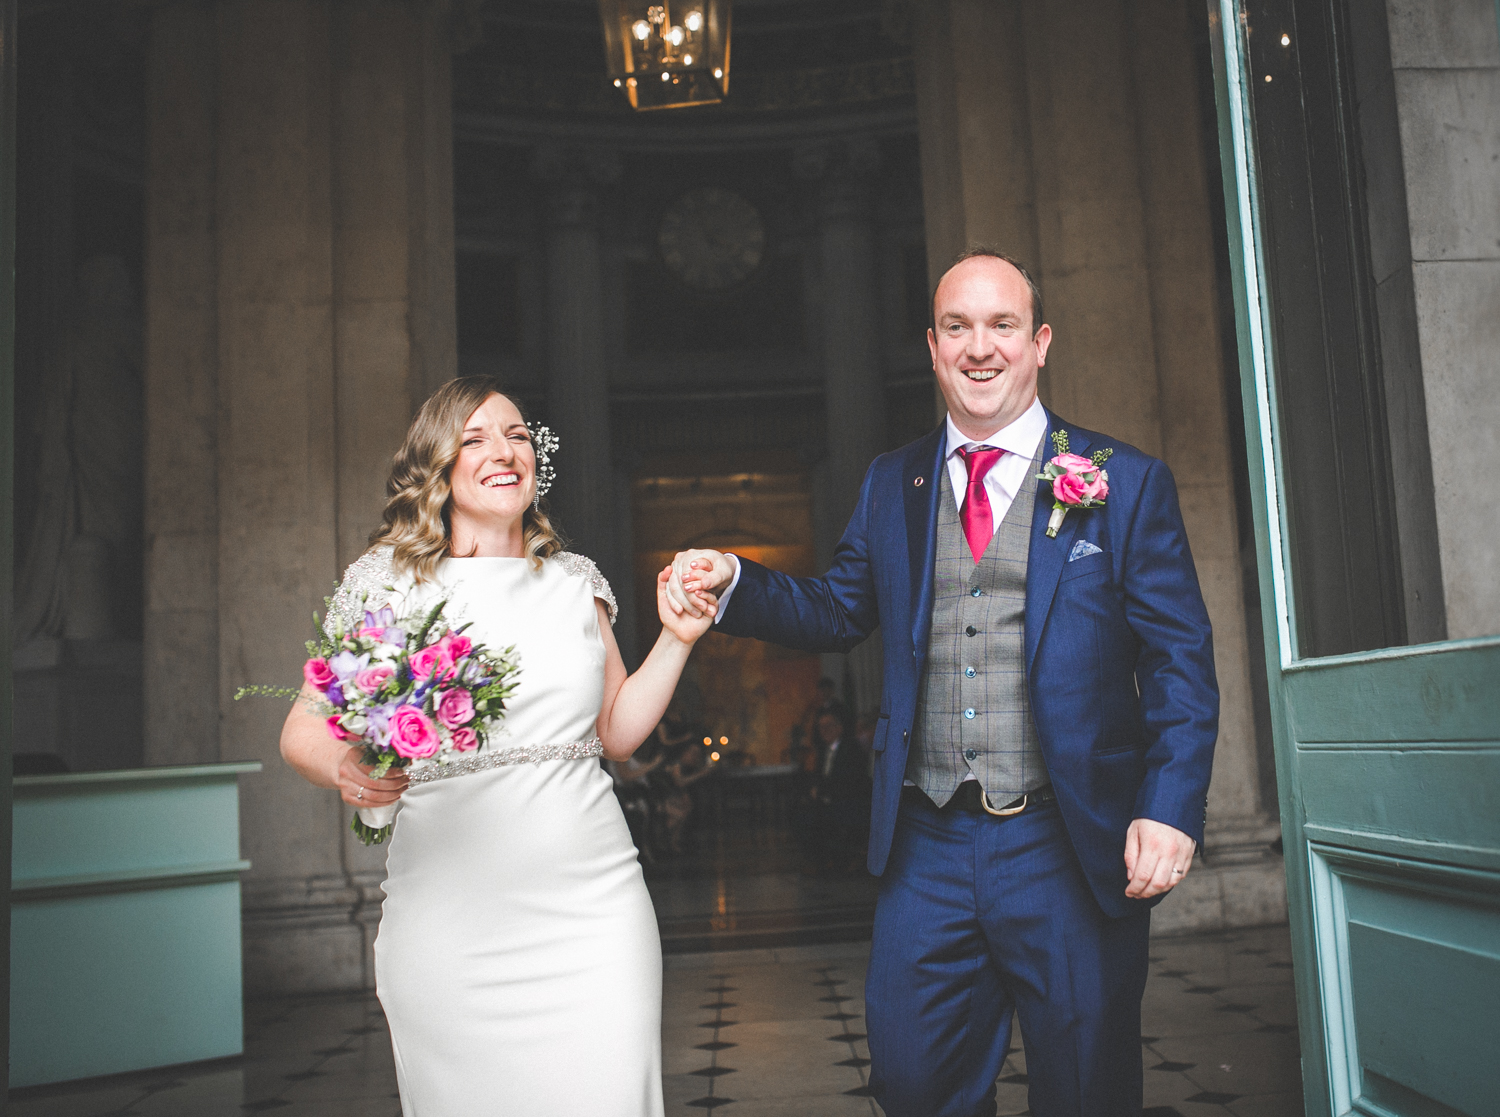 City Hall wedding Dublin -49.jpg